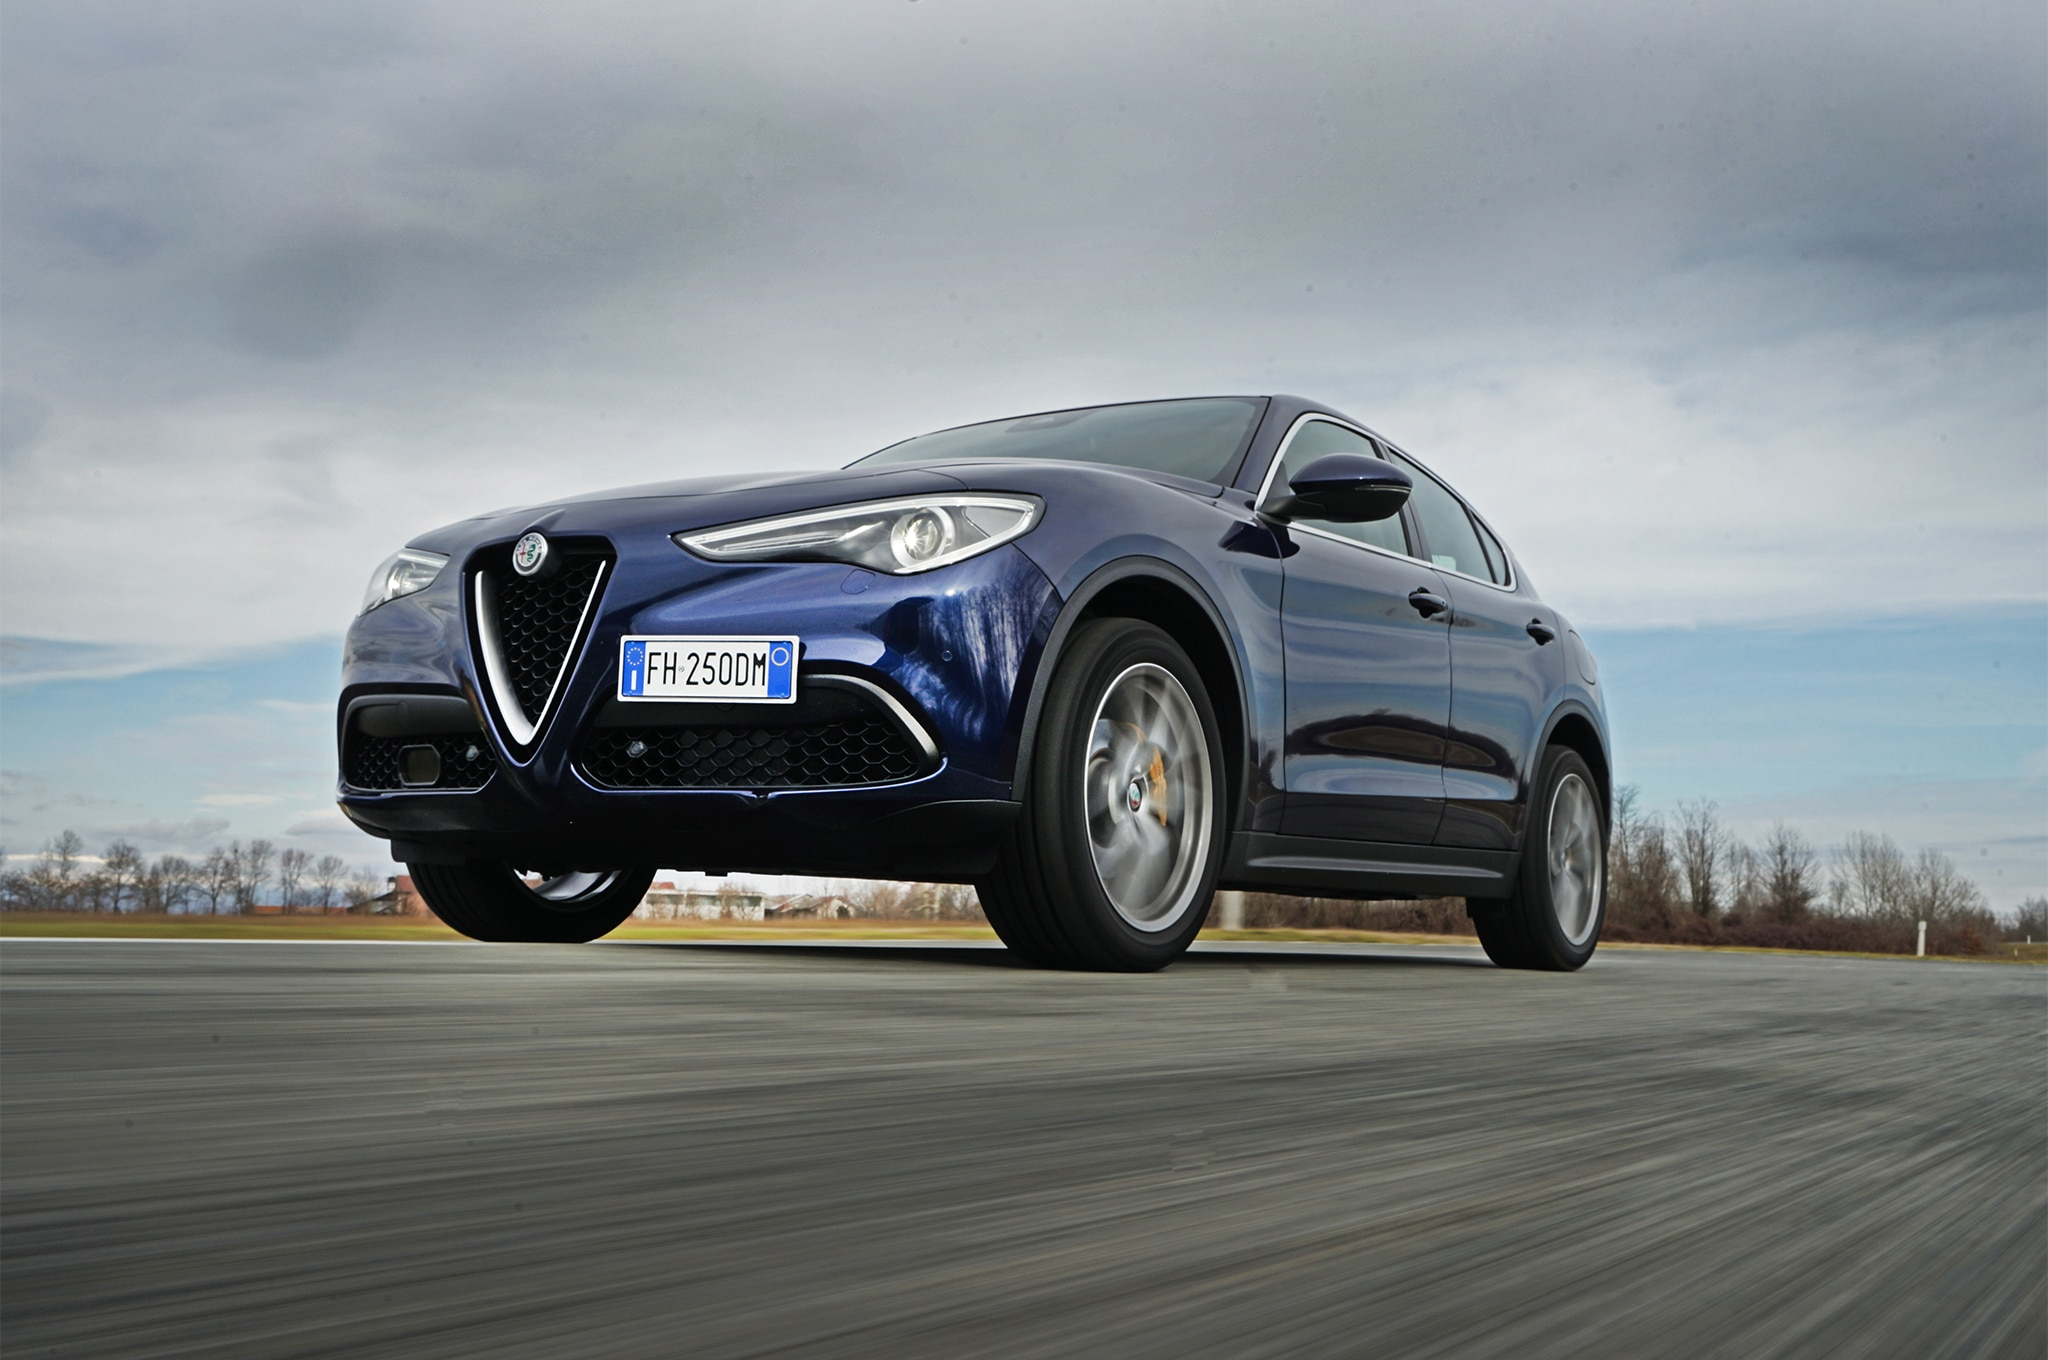 2018 Alfa Romeo Stelvio Q4 Front Three Quarter In Motion 02 1